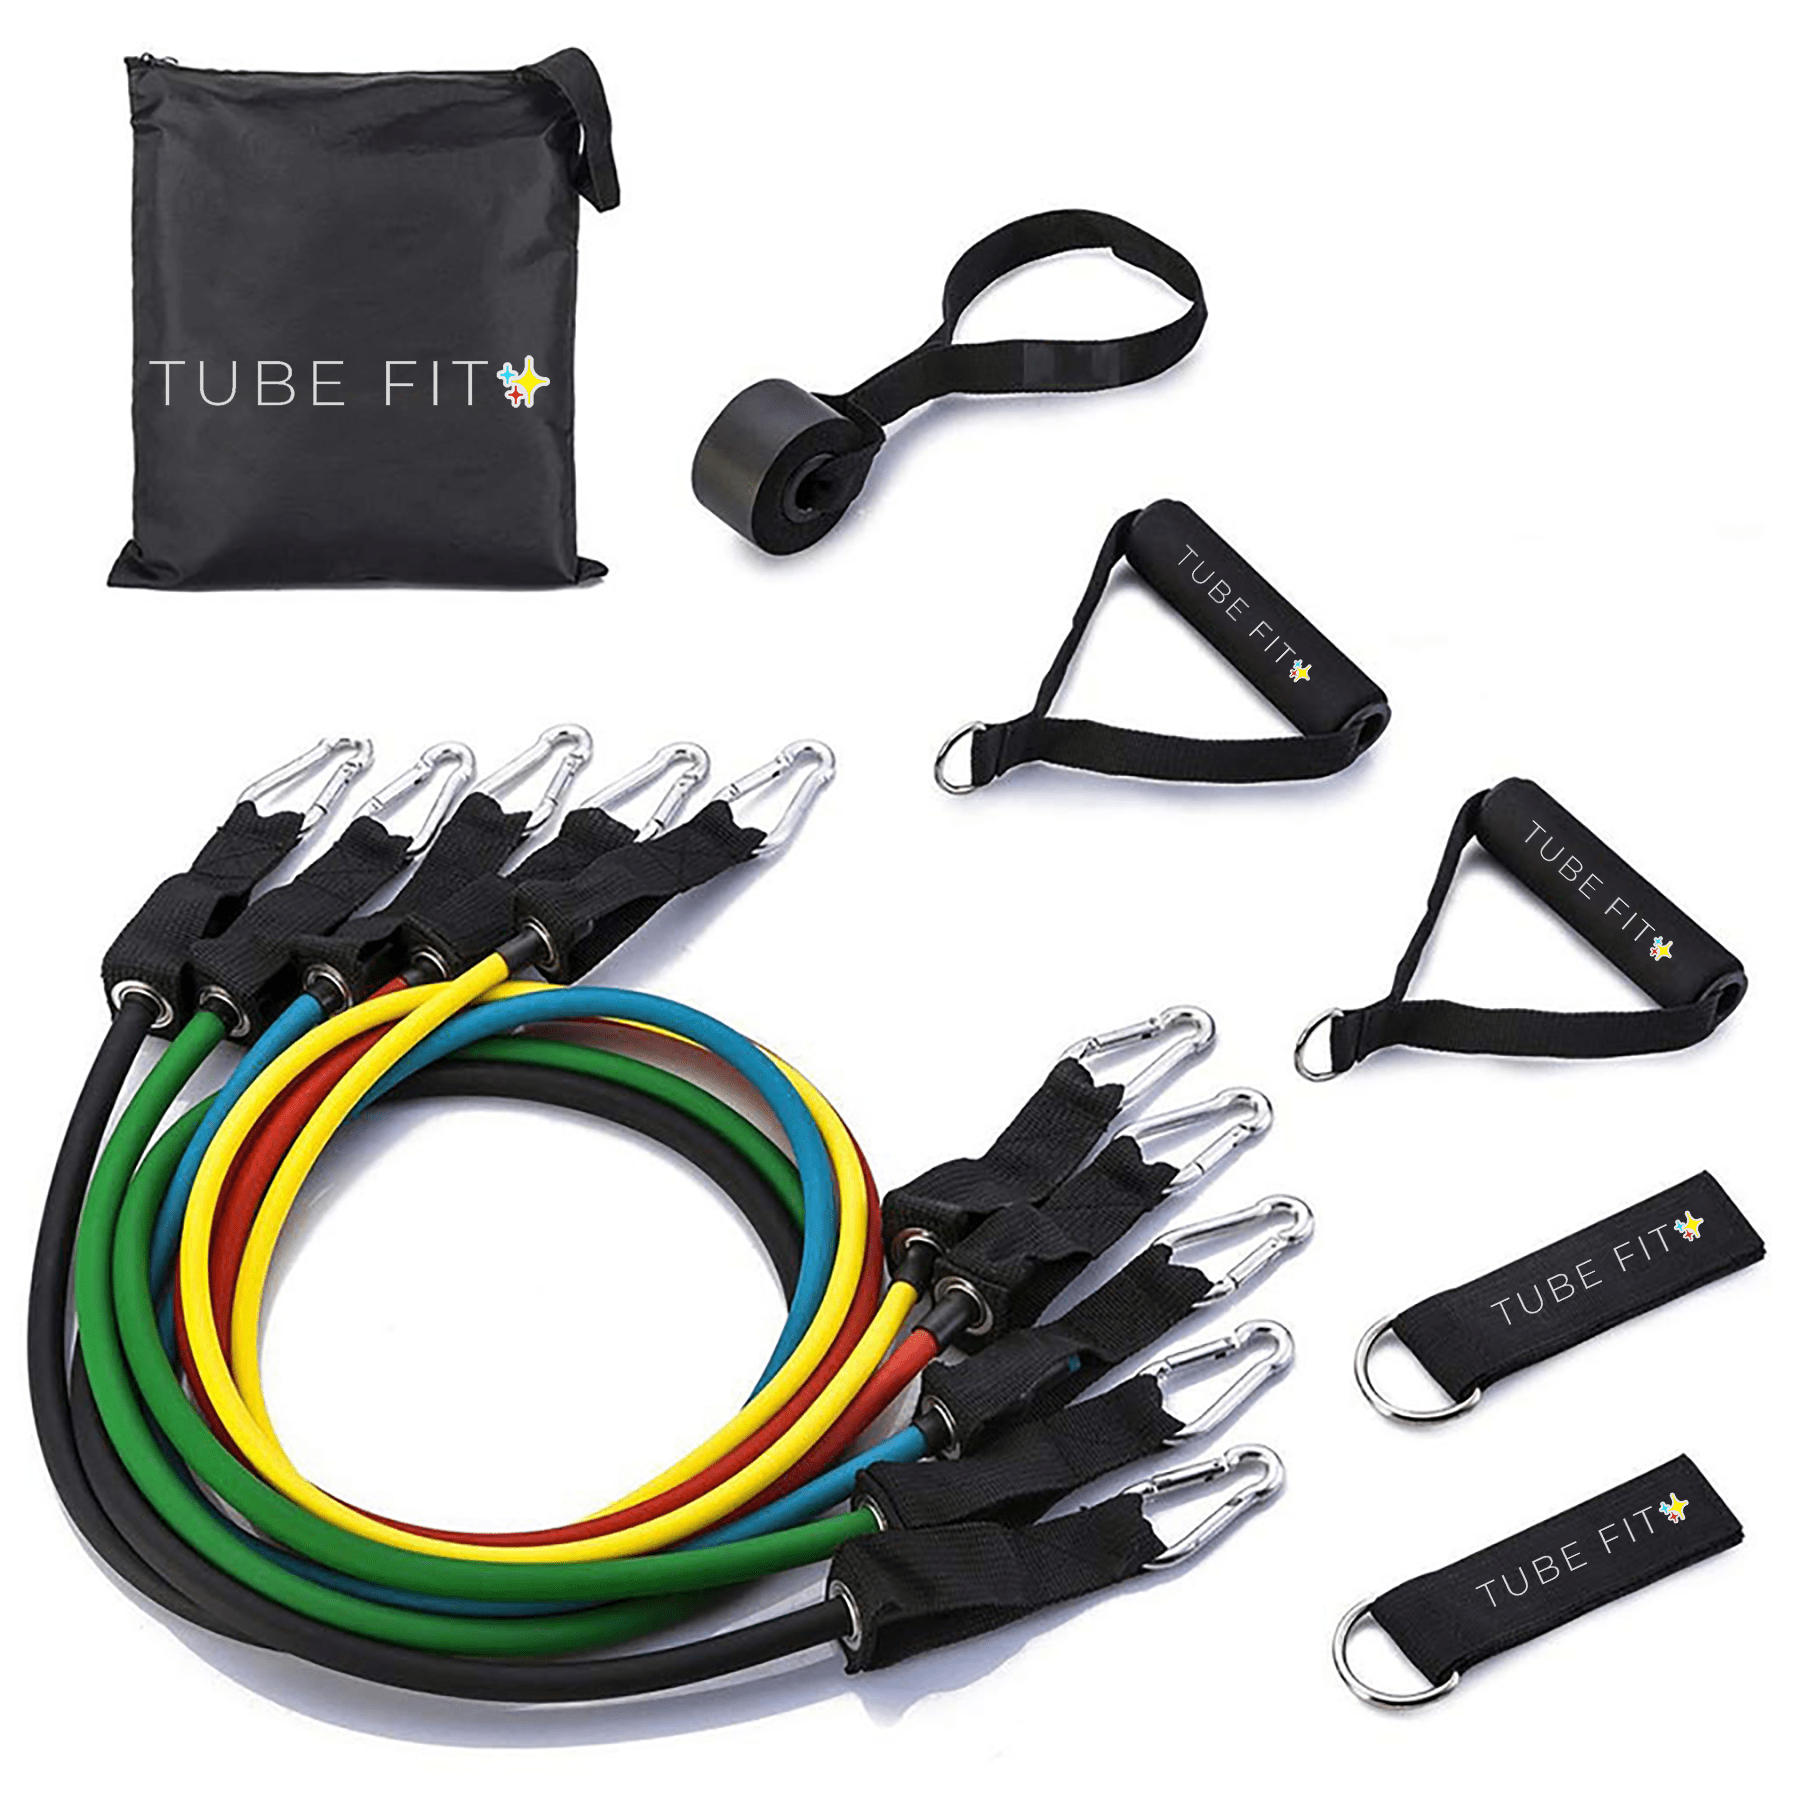 Kit tubeta FIT PRO Advanced Premium